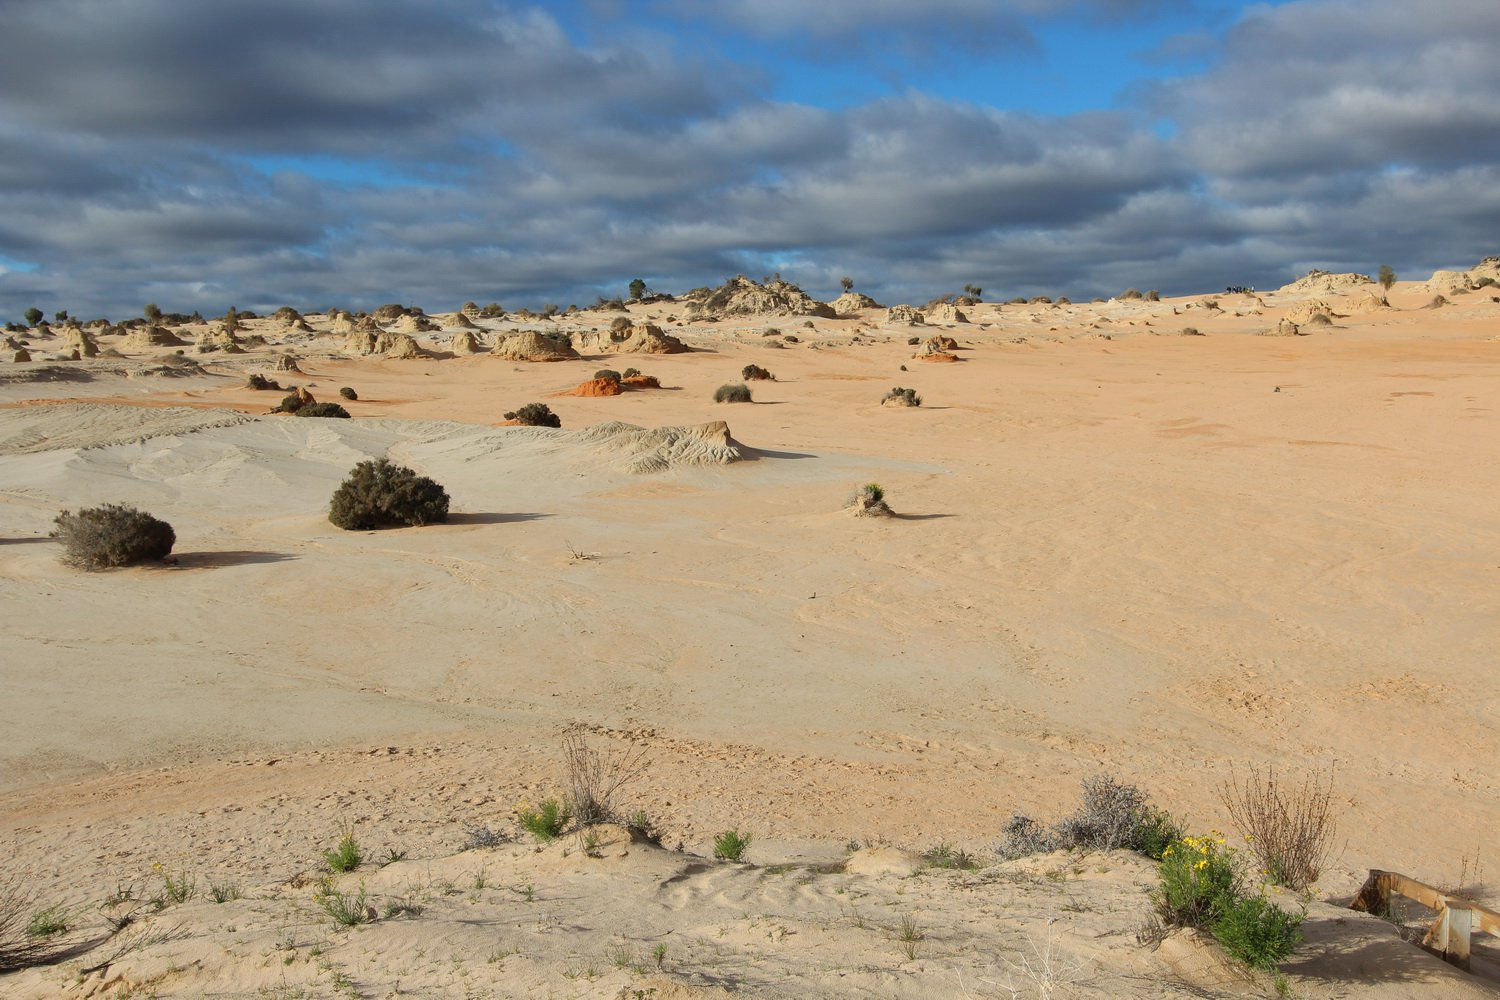 The Walls of China sand dunes at Lake Mungo. Mungo National Park. North West Victoria Tour, July 2020.